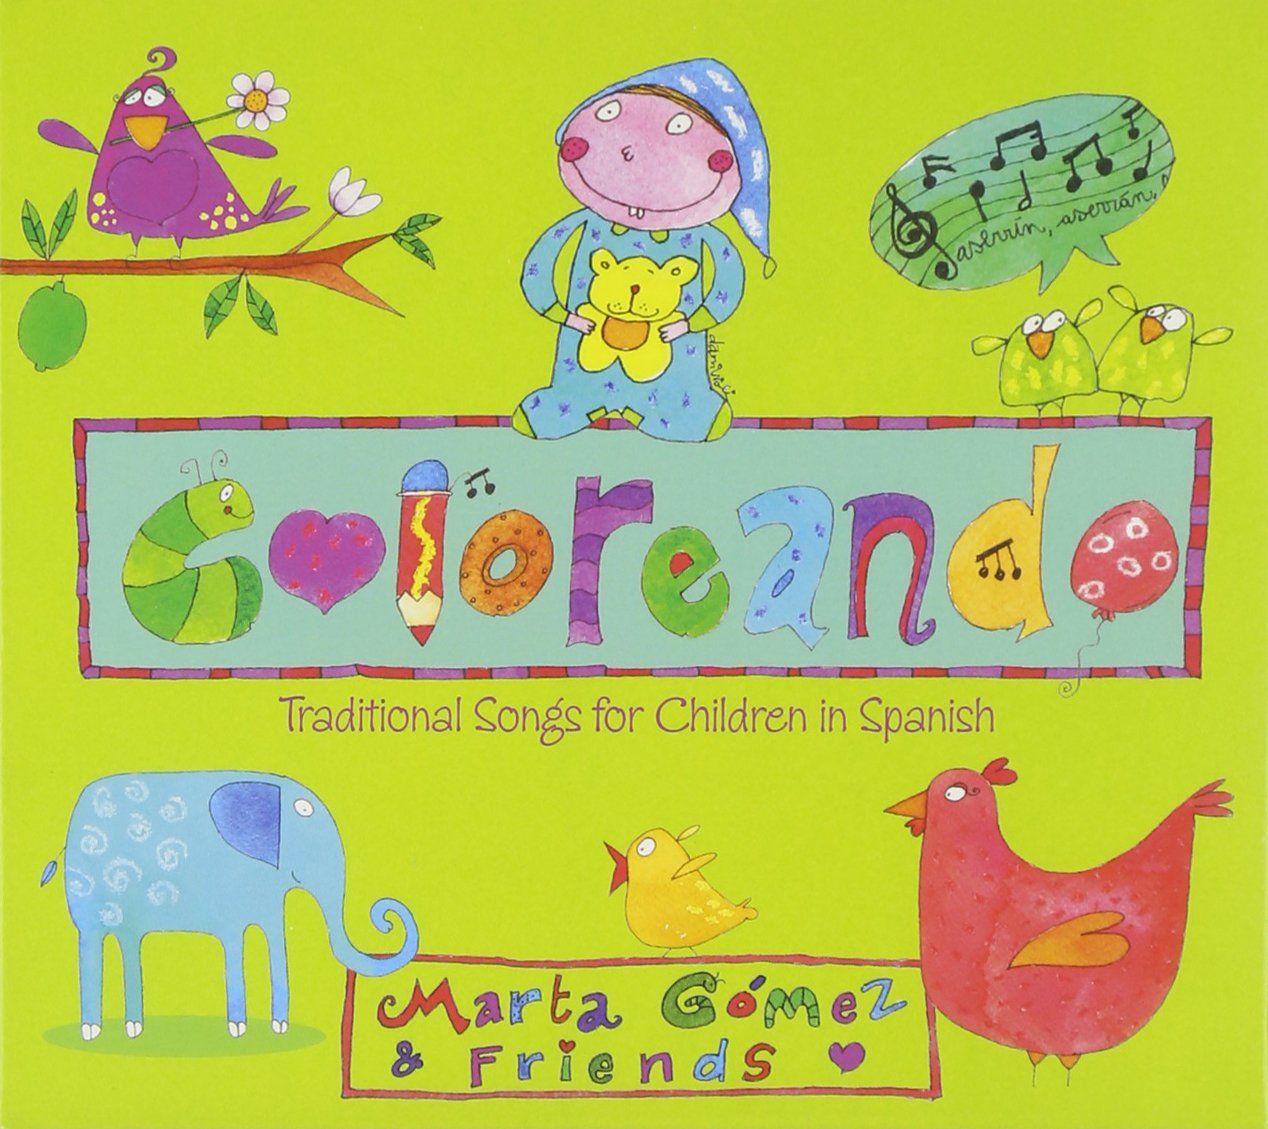 Coloreando: Traditional Songs for Children in Spanish by GLP